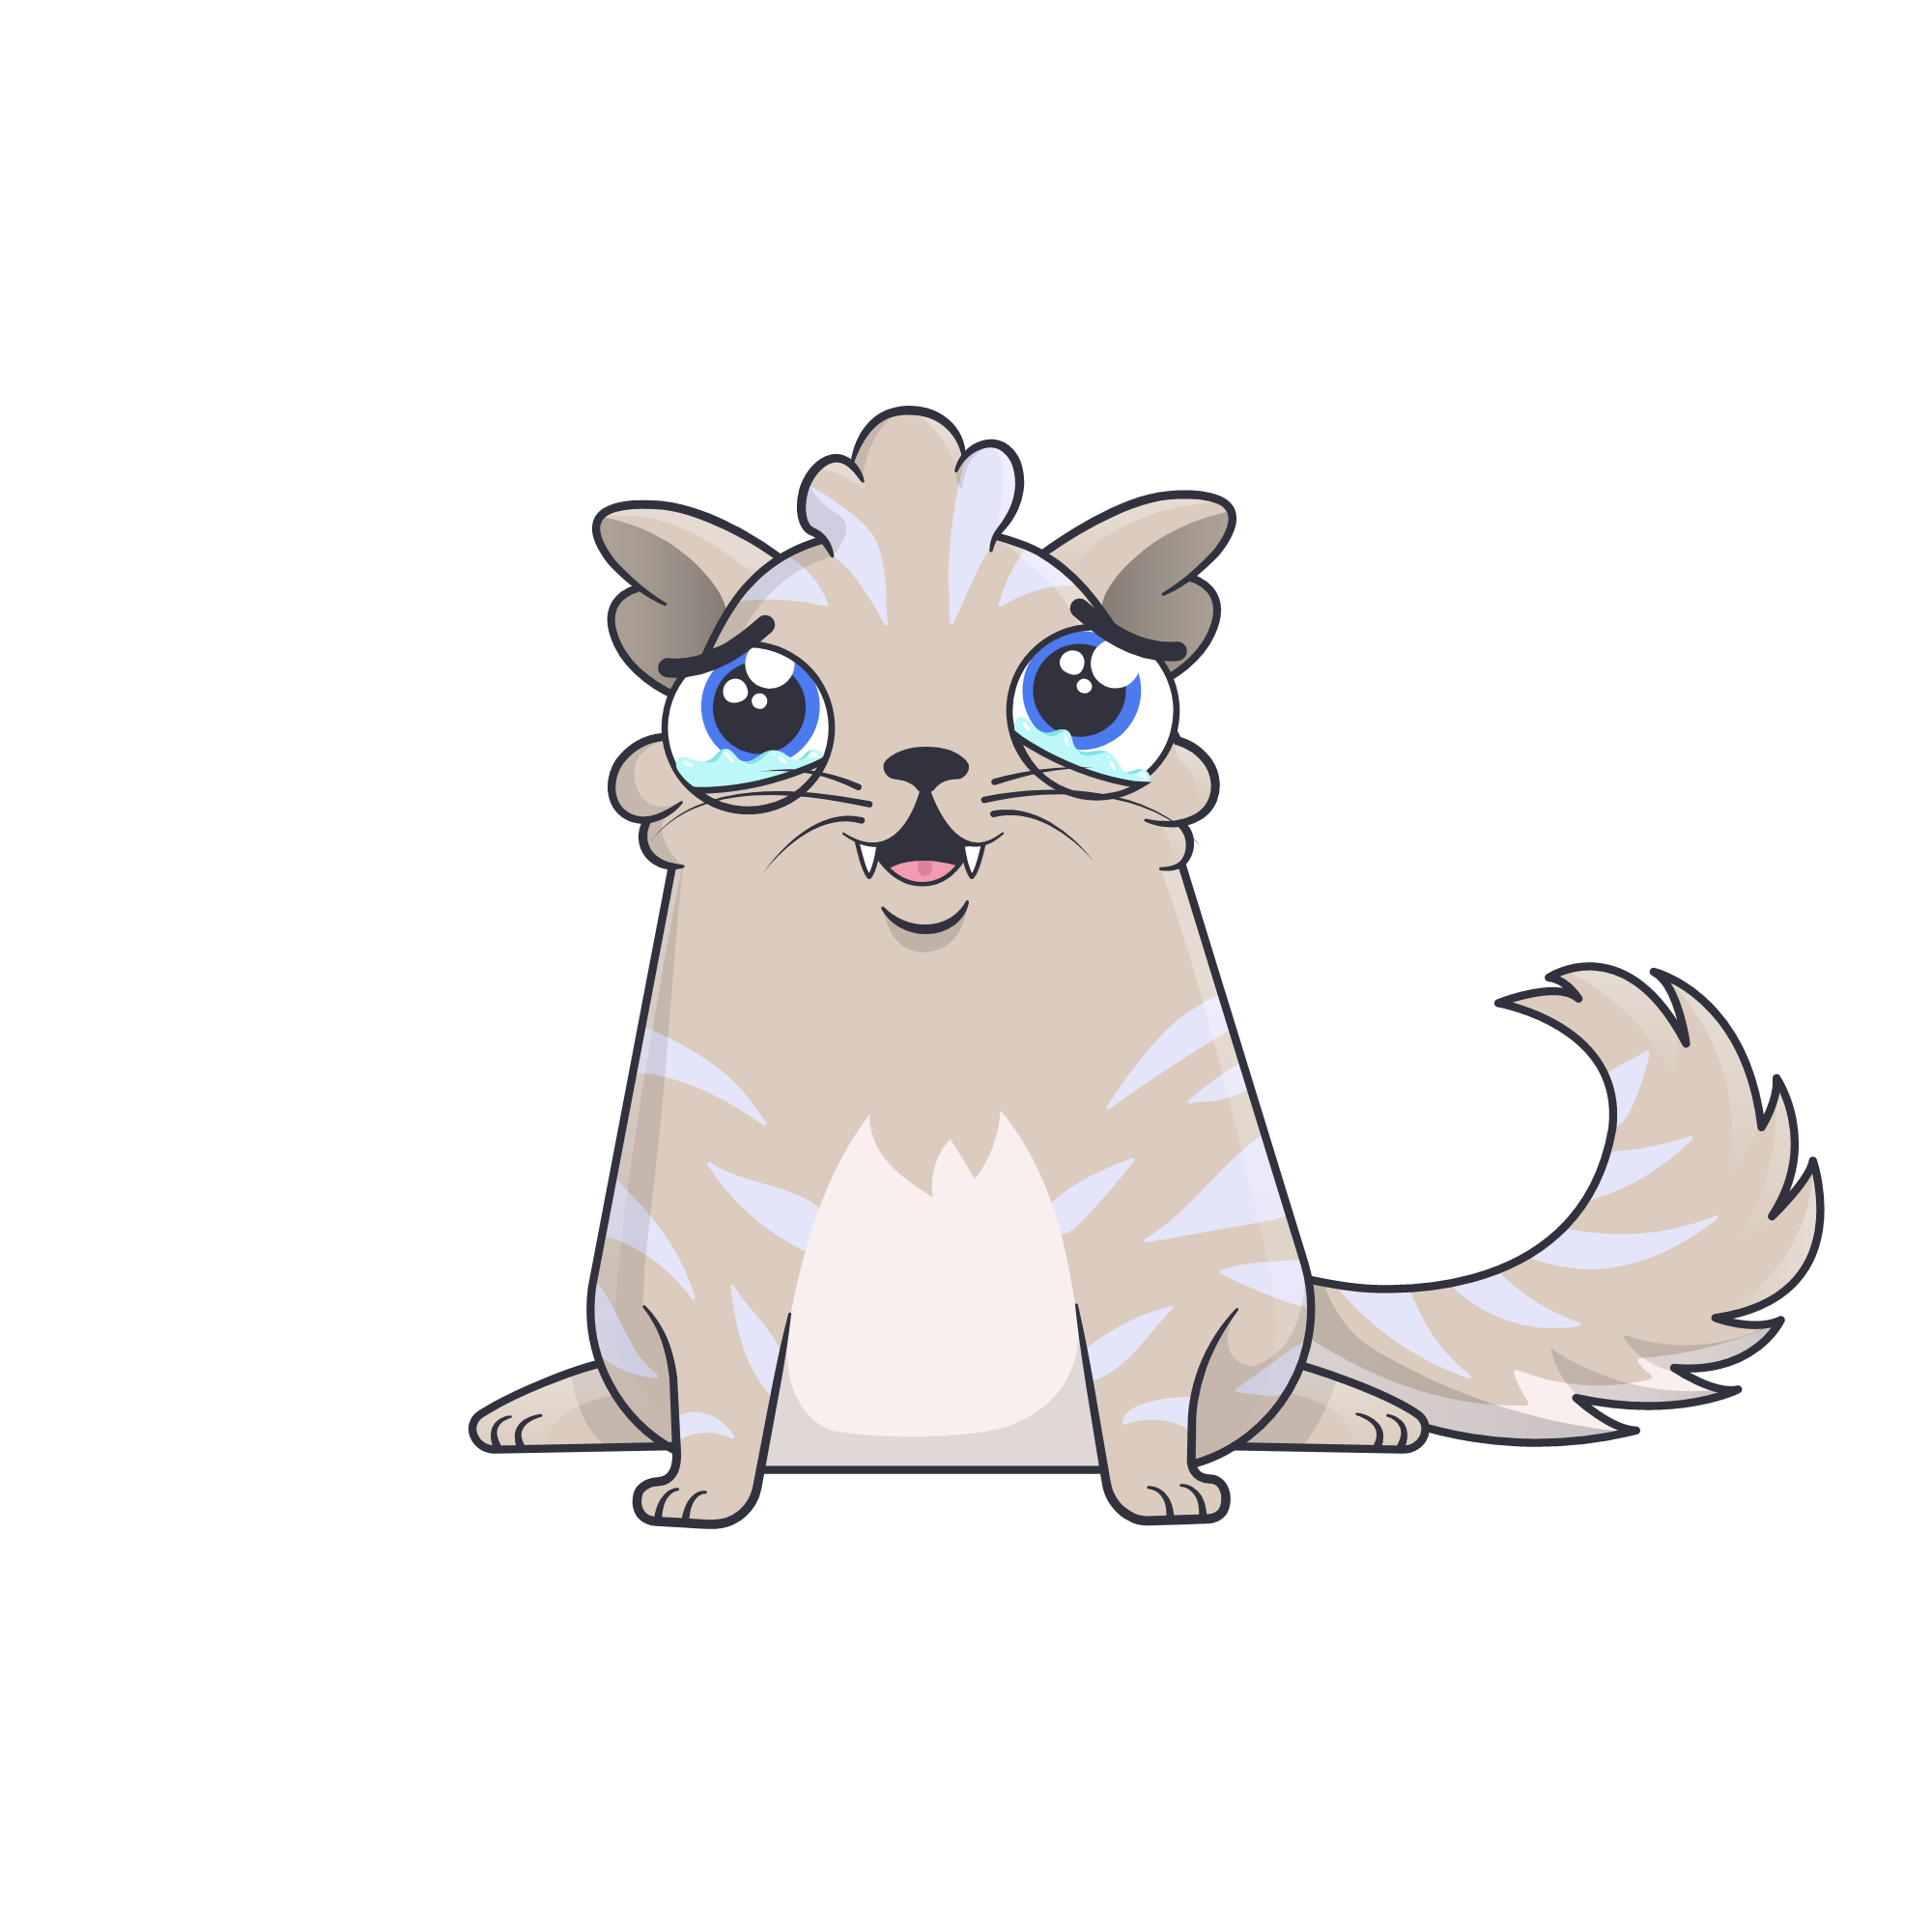 cryptokitty #1282686